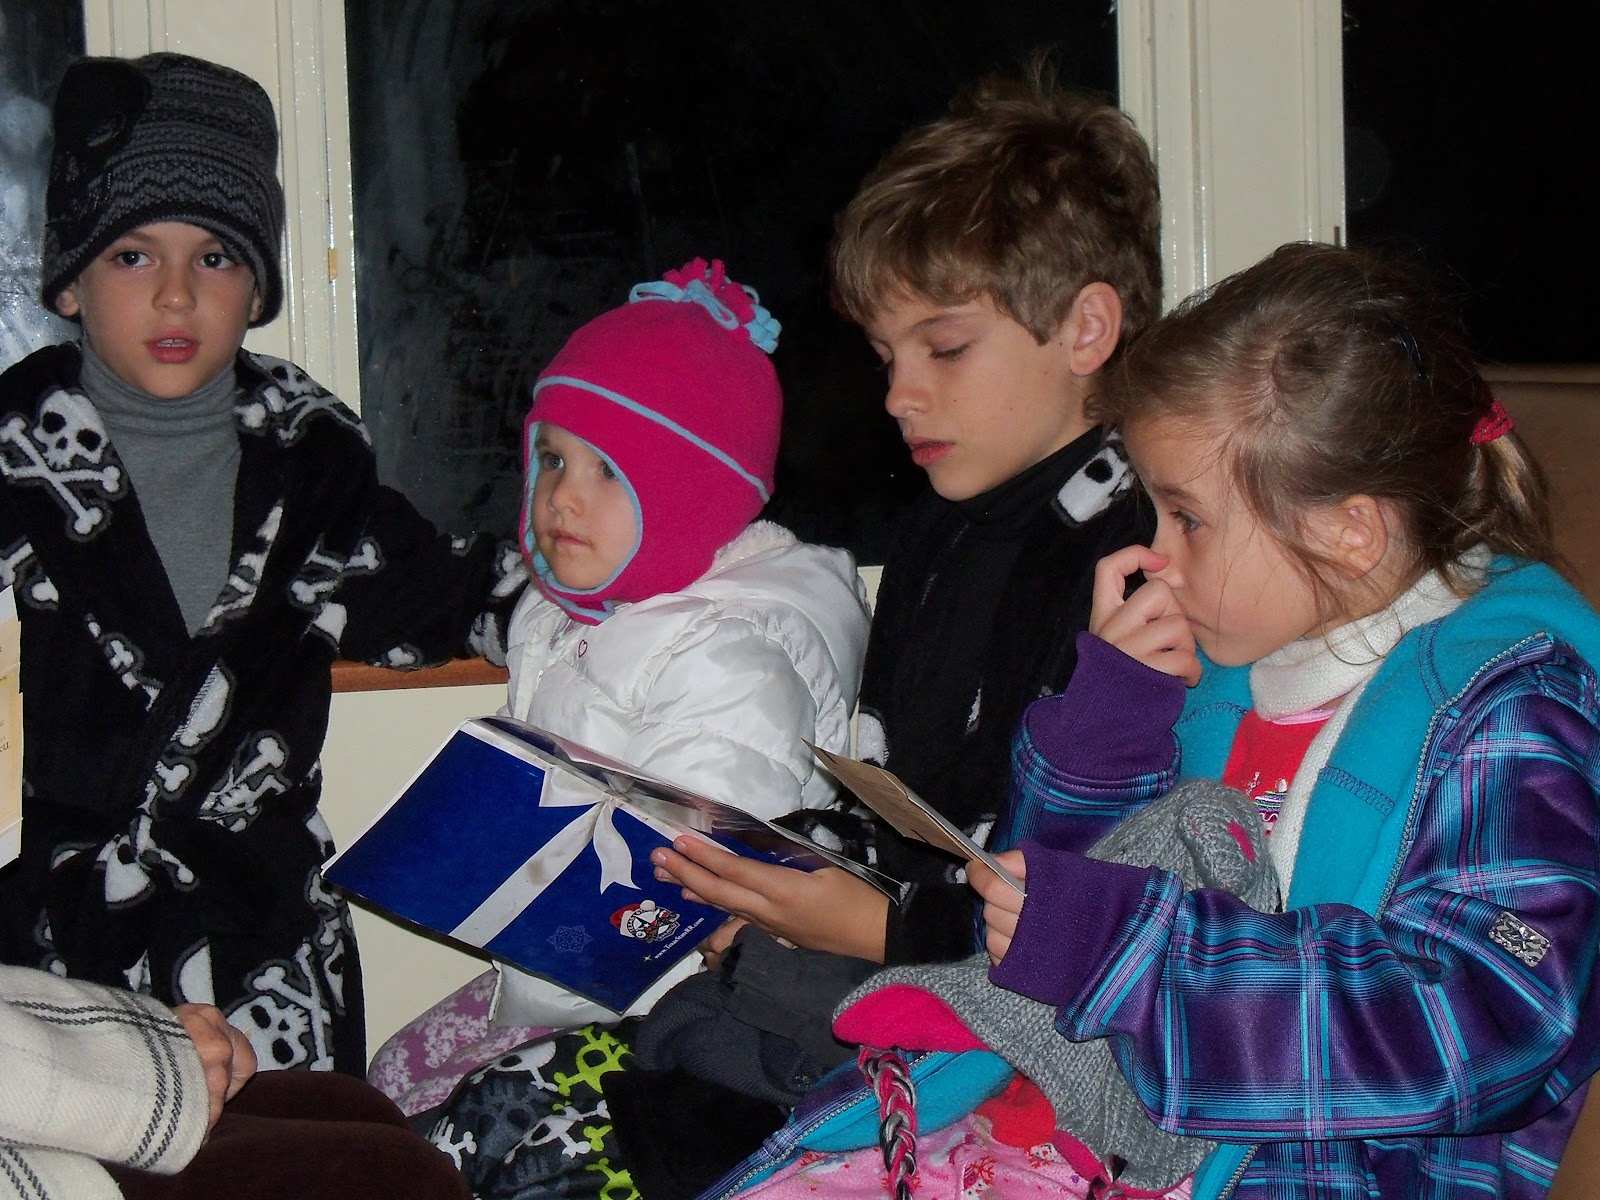 Polar Express Christmas Train 2011 - 115_0973.JPG